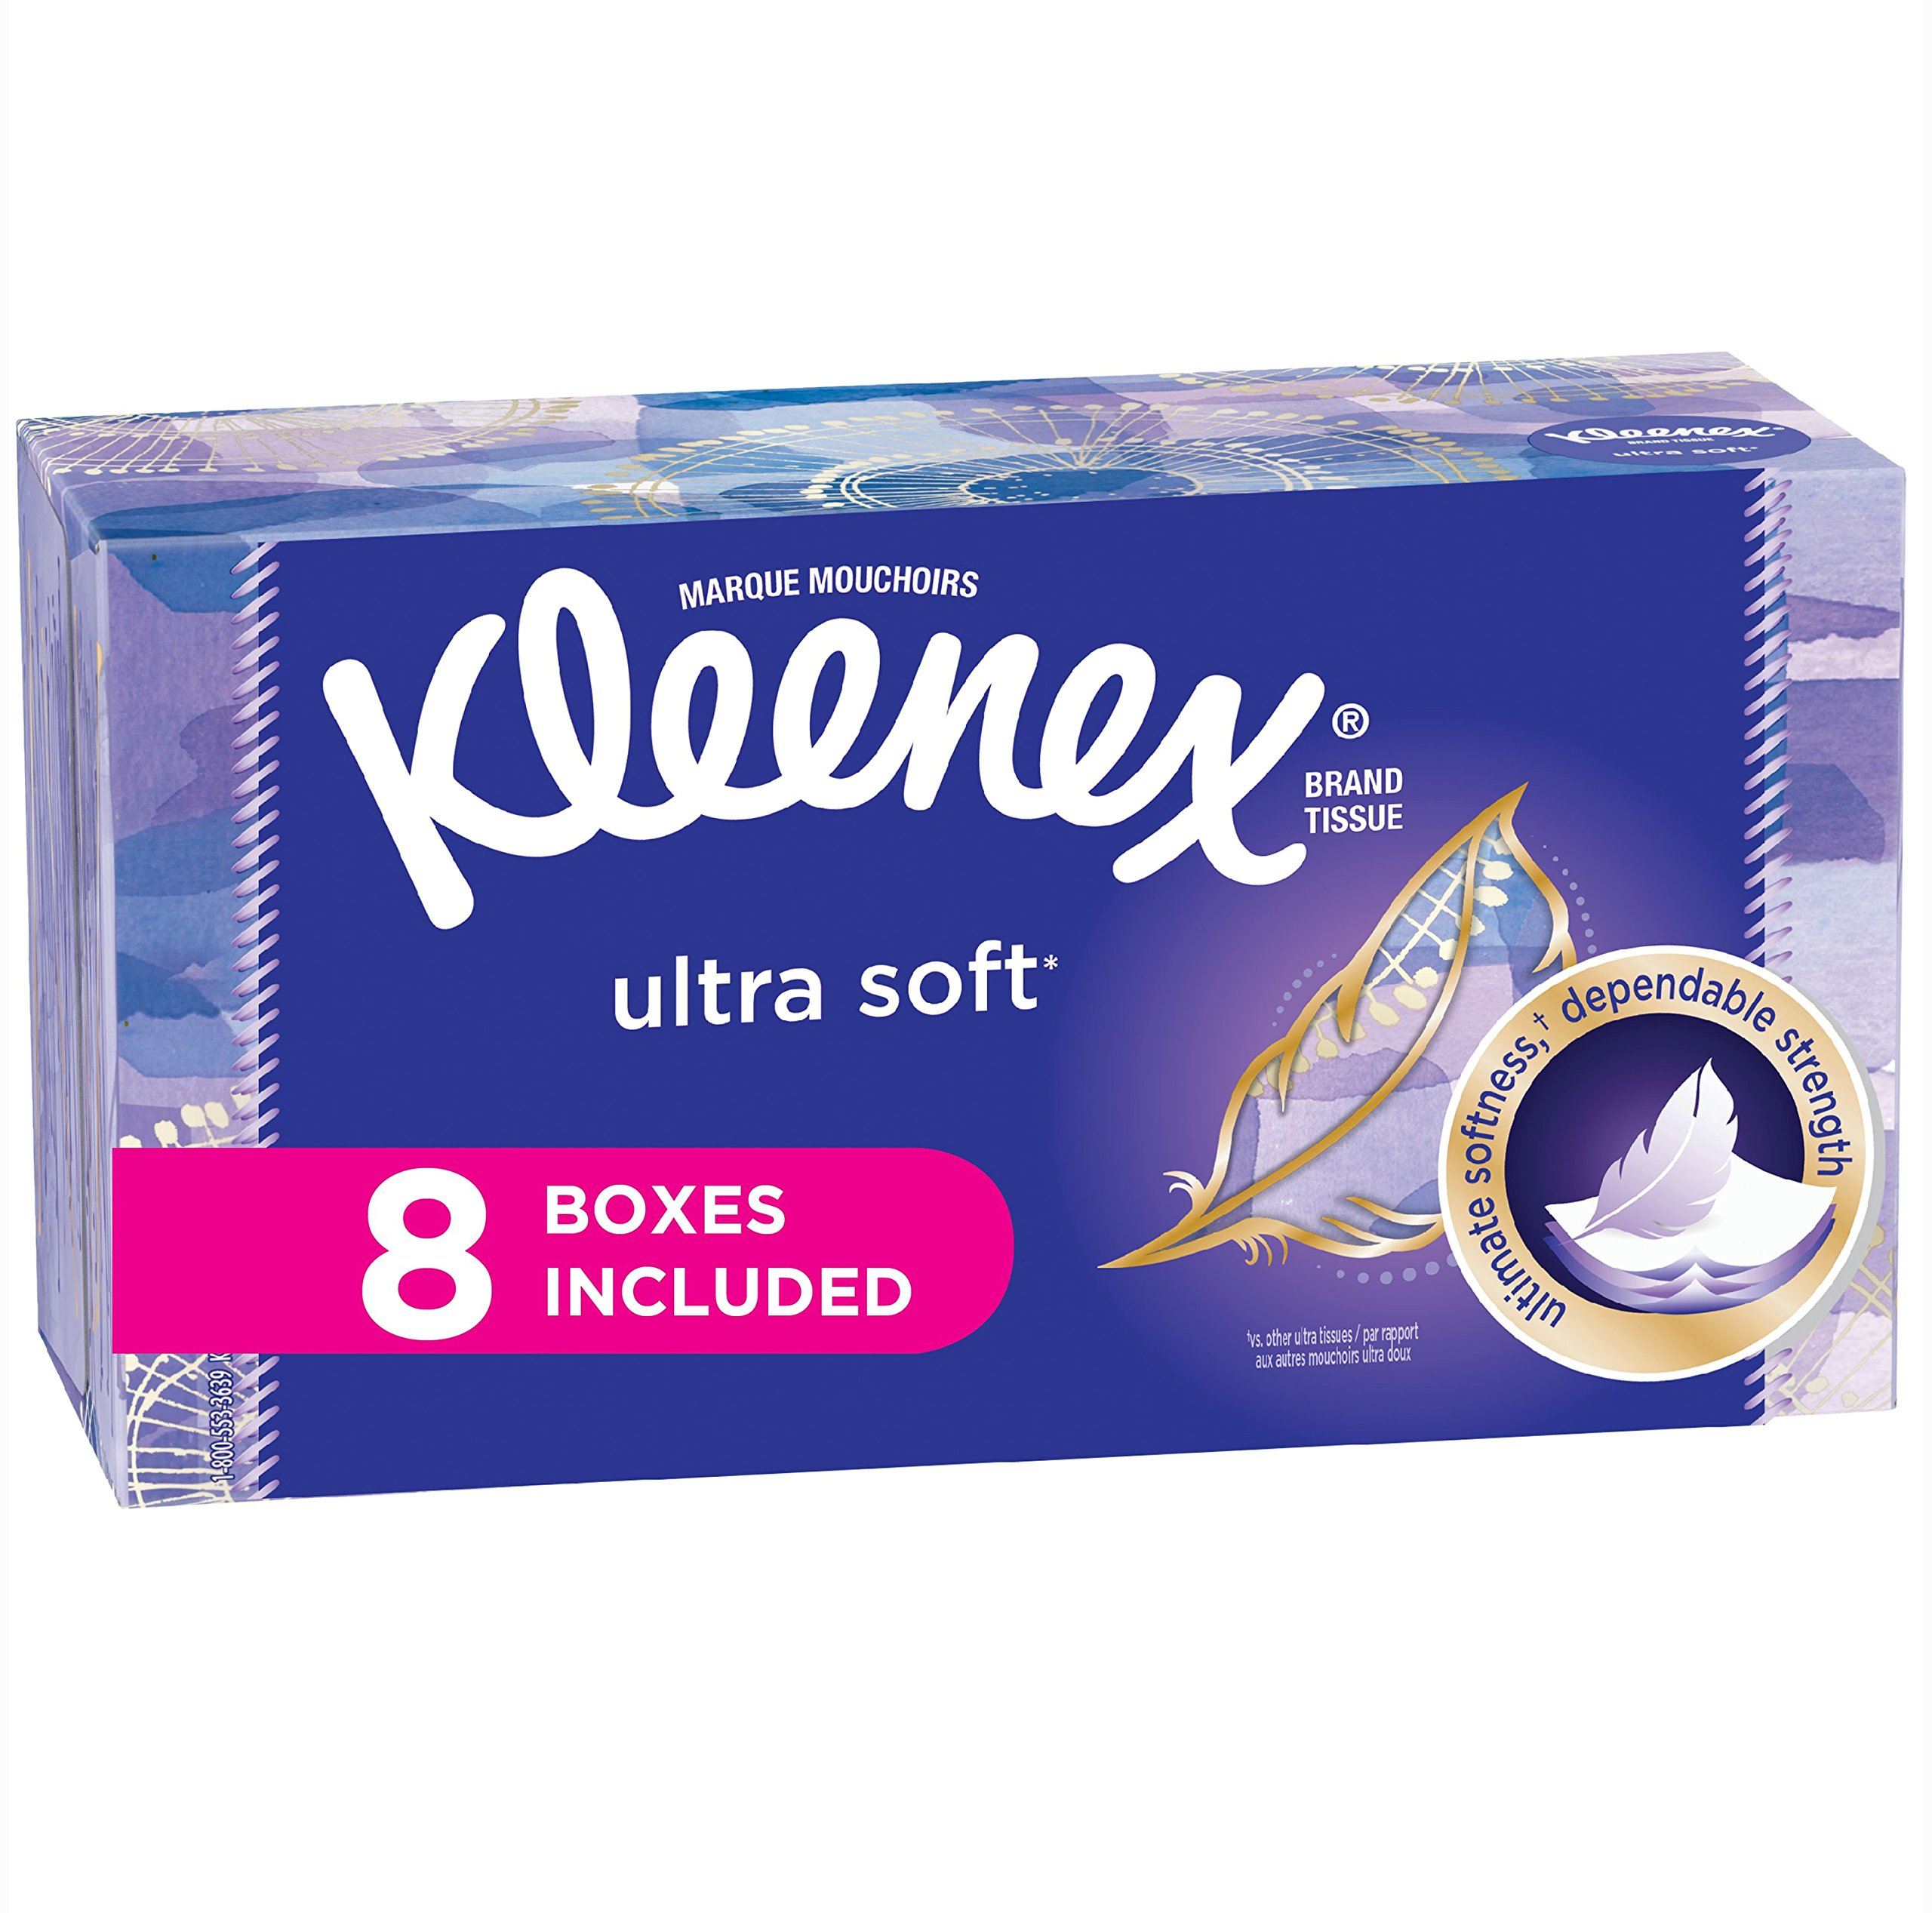 Kleenex Ultra Soft Facial Tissues, Flat Box, 130 Tissues per Flat Box, 8 Packs